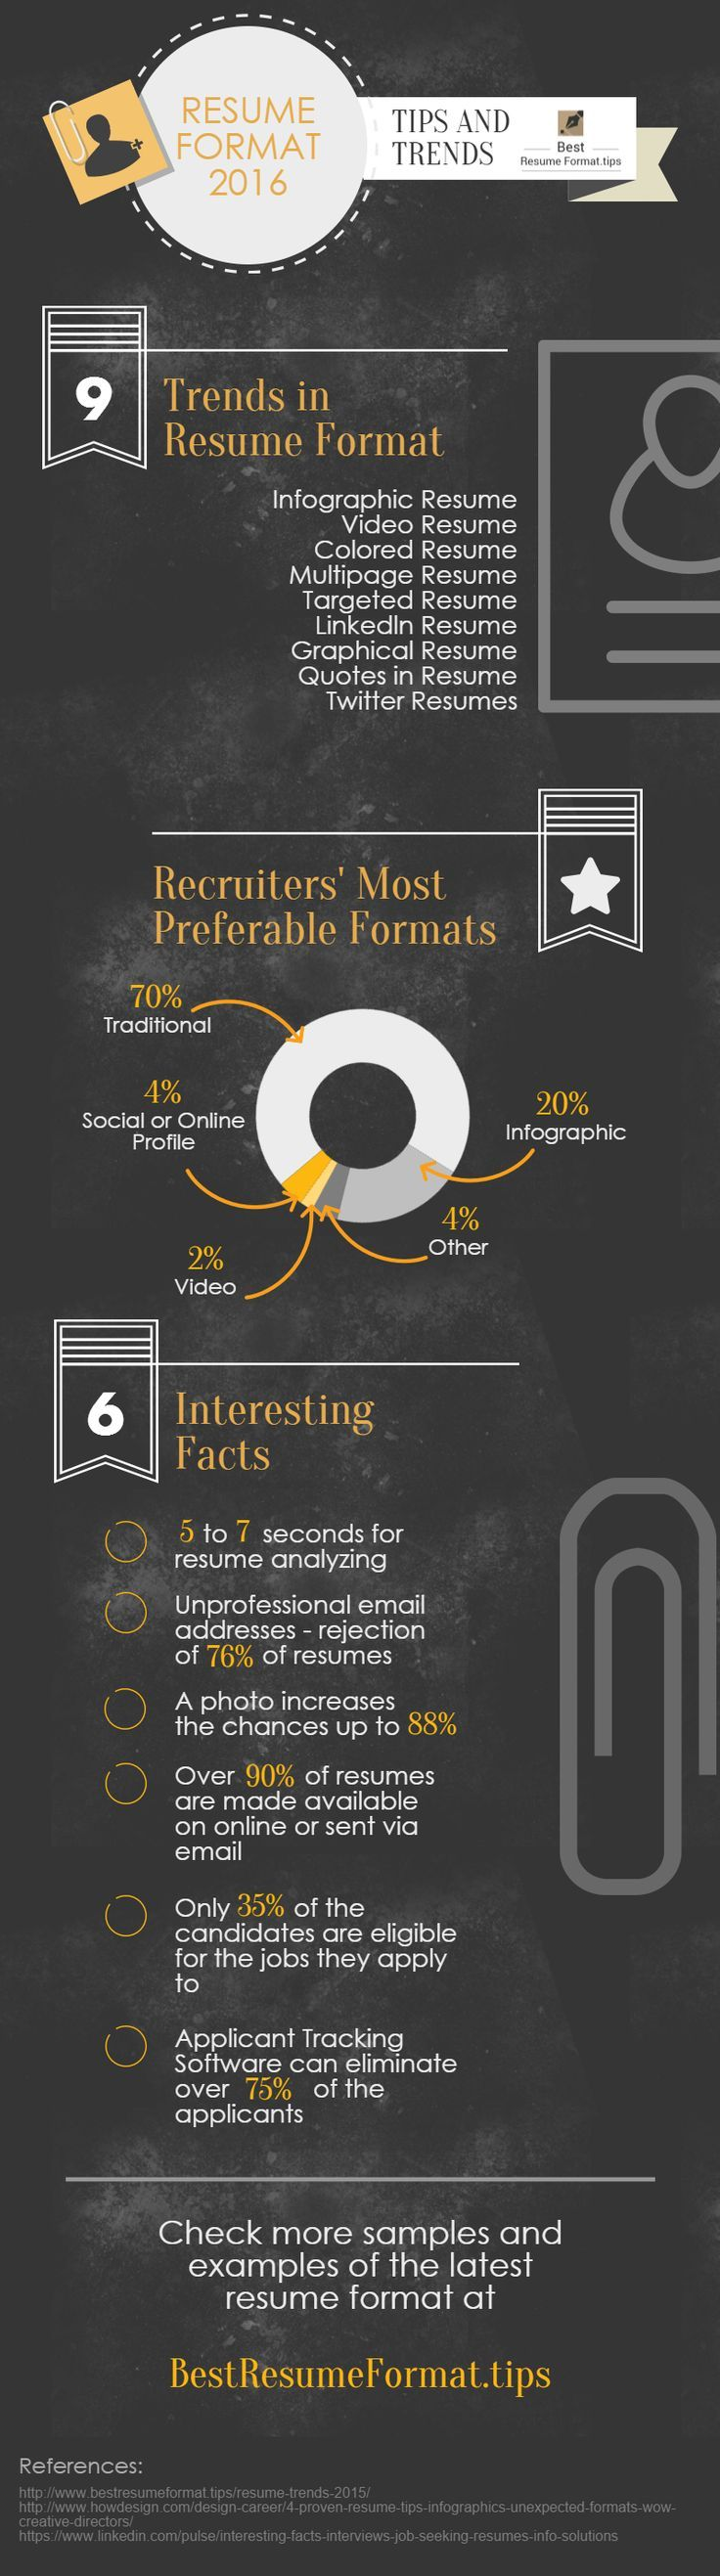 Read more about BUSINESS COMMUNICATION on Tipsographic.com